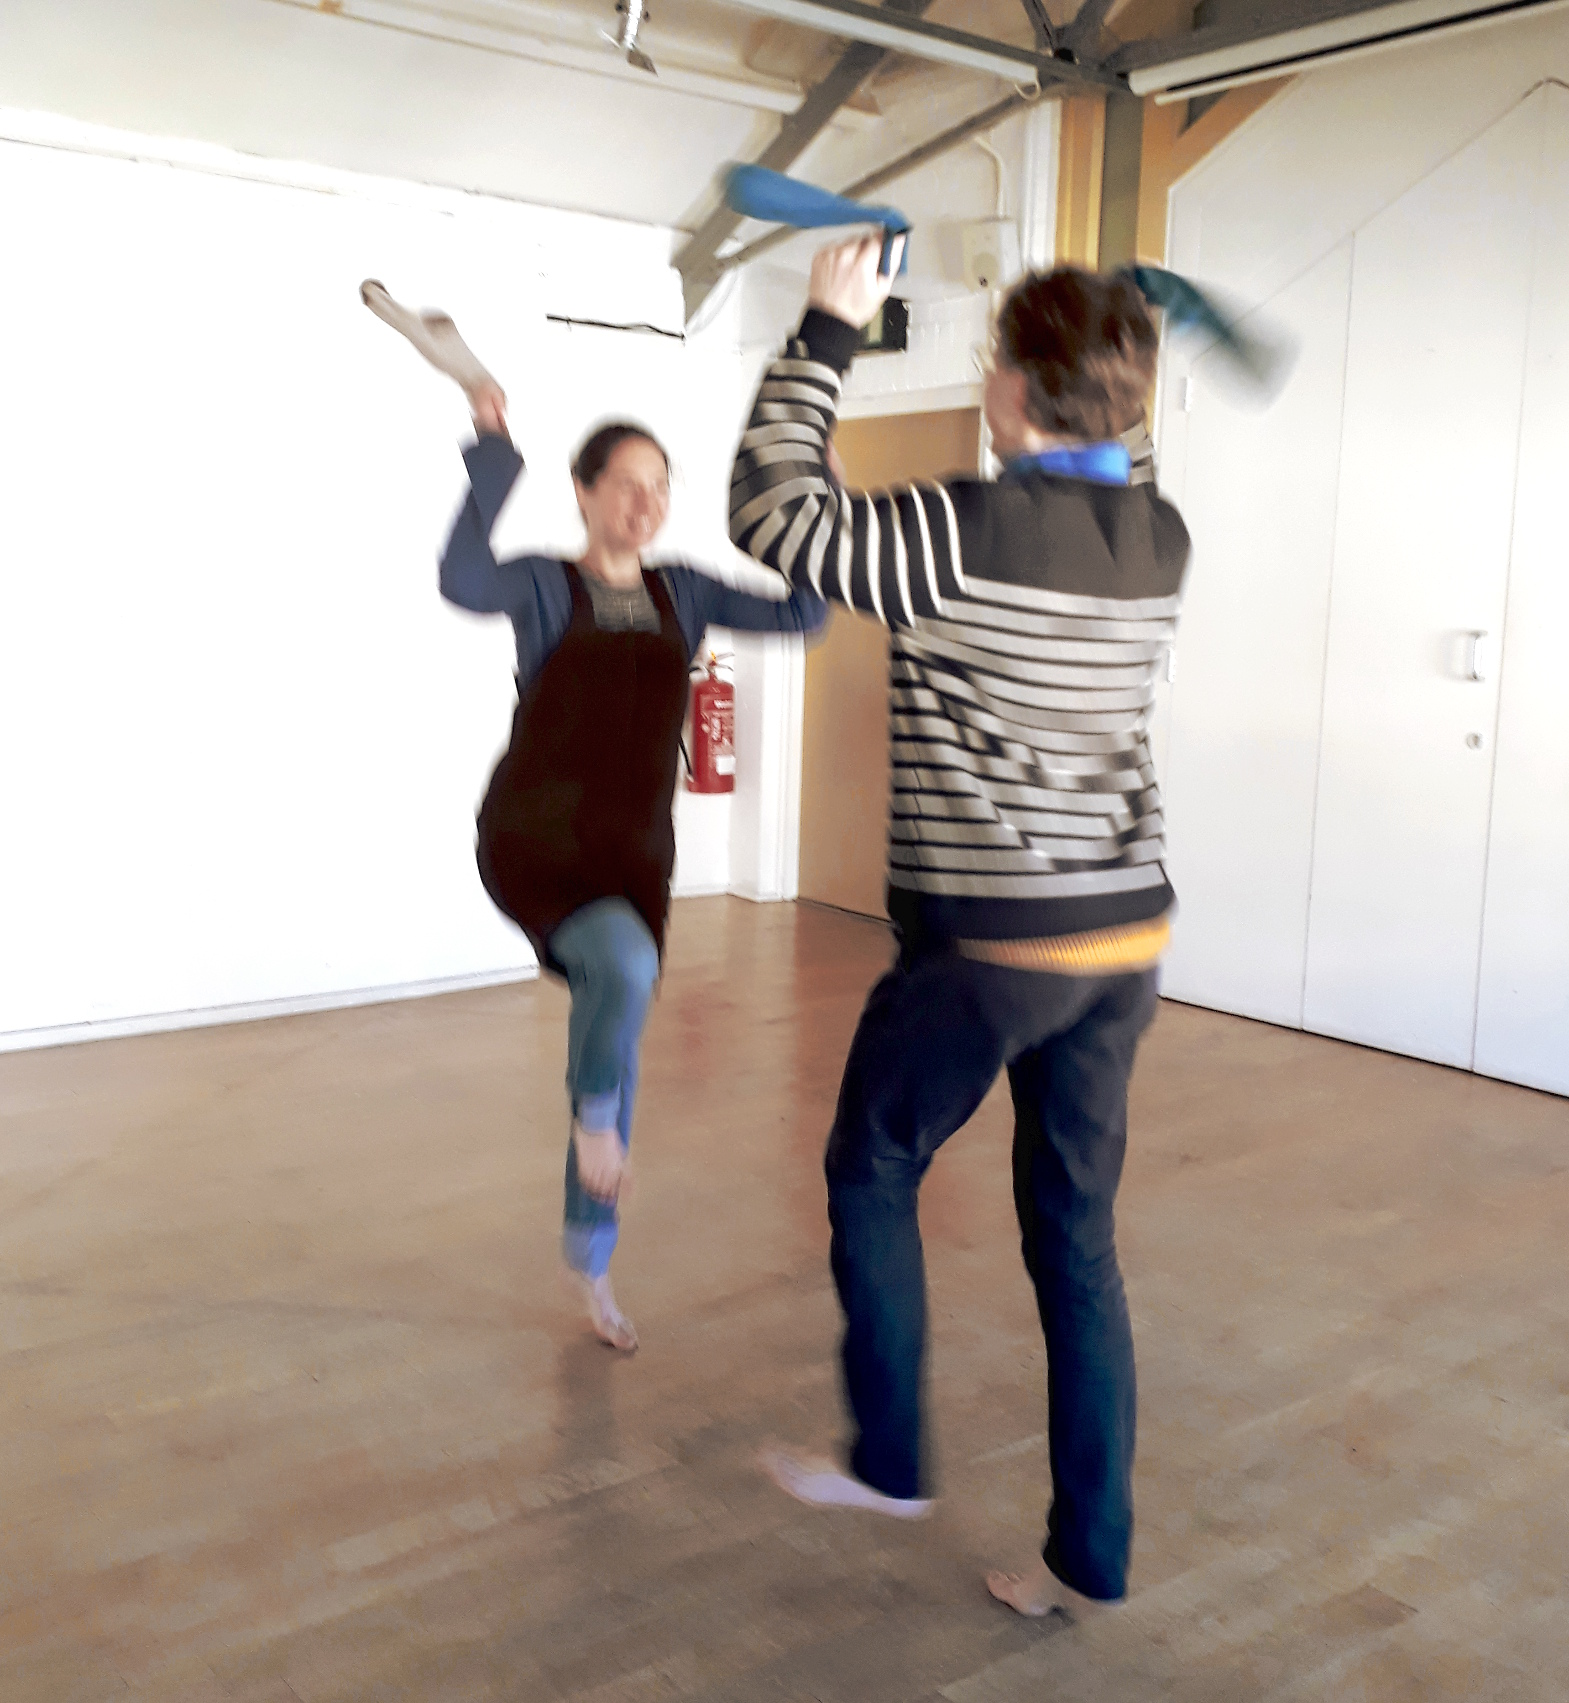 Naomi and Andrew, Morris dancing using socks as handkerchiefs on 8 November 2017 at Creative Lab, Oxford Playhouse.